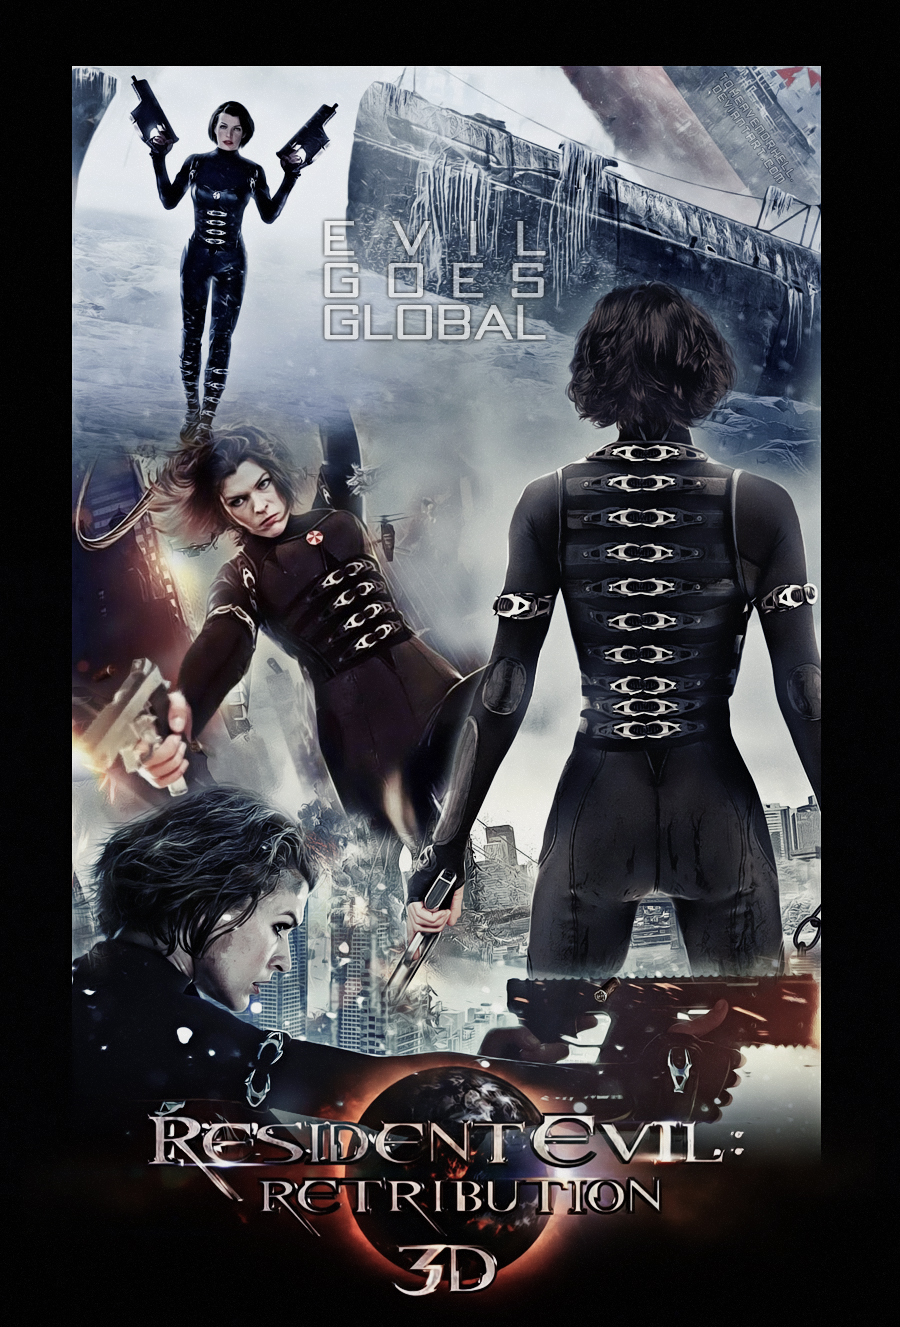 Resident Evil Retribution Movie Poster By Toheavenorhell On Deviantart